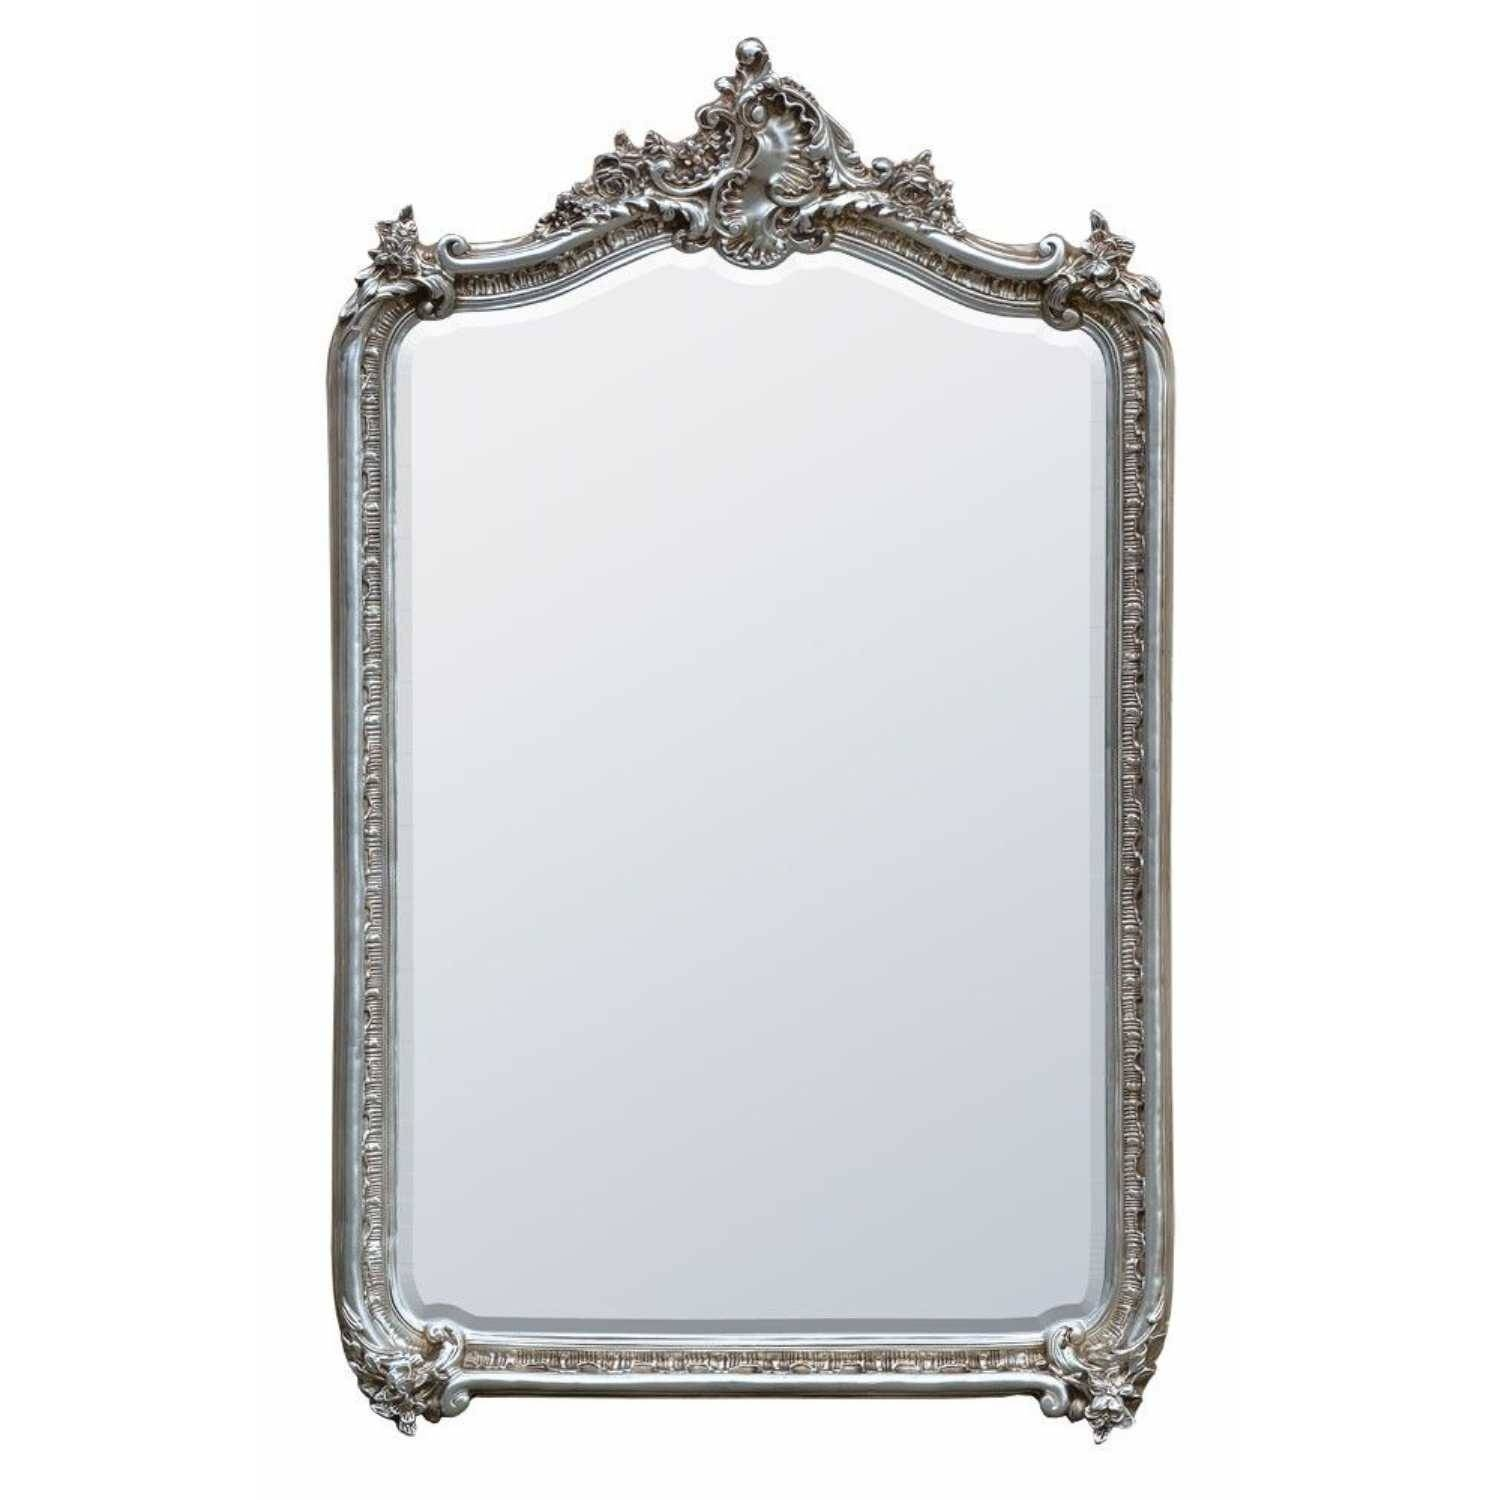 French Louis Silver Bevelled Mirror intended for Silver Bevelled Mirrors (Image 15 of 25)